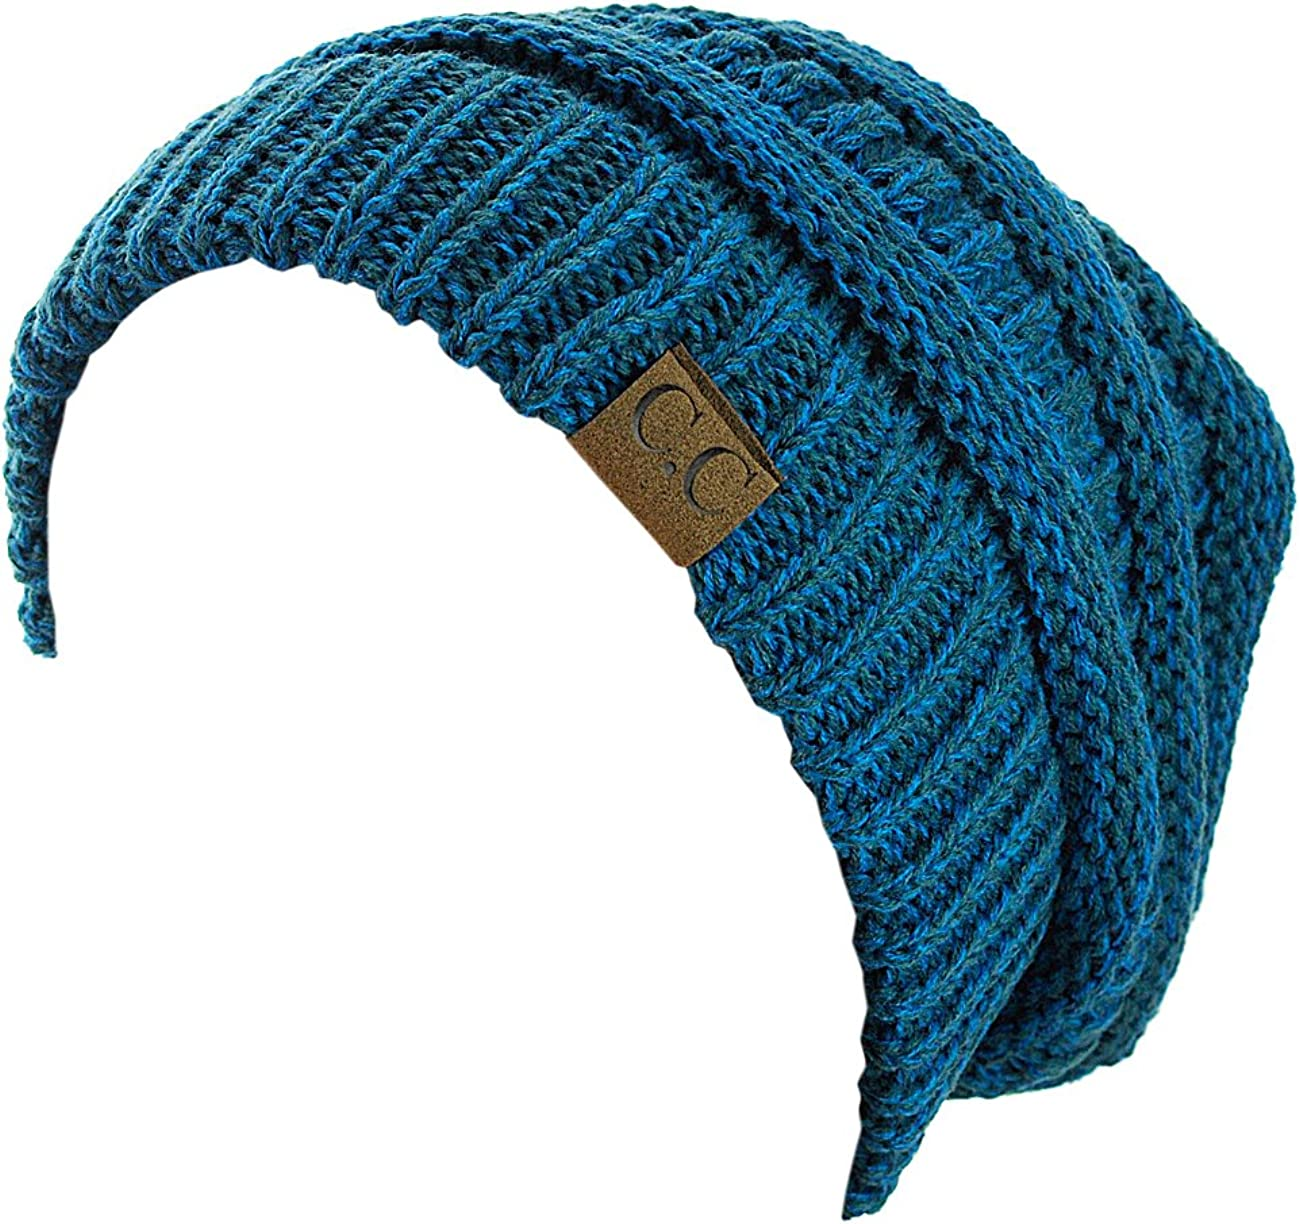 C.C Trendy Warm Chunky Soft Stretch Cable Knit Beanie Skully, Teal/Blue